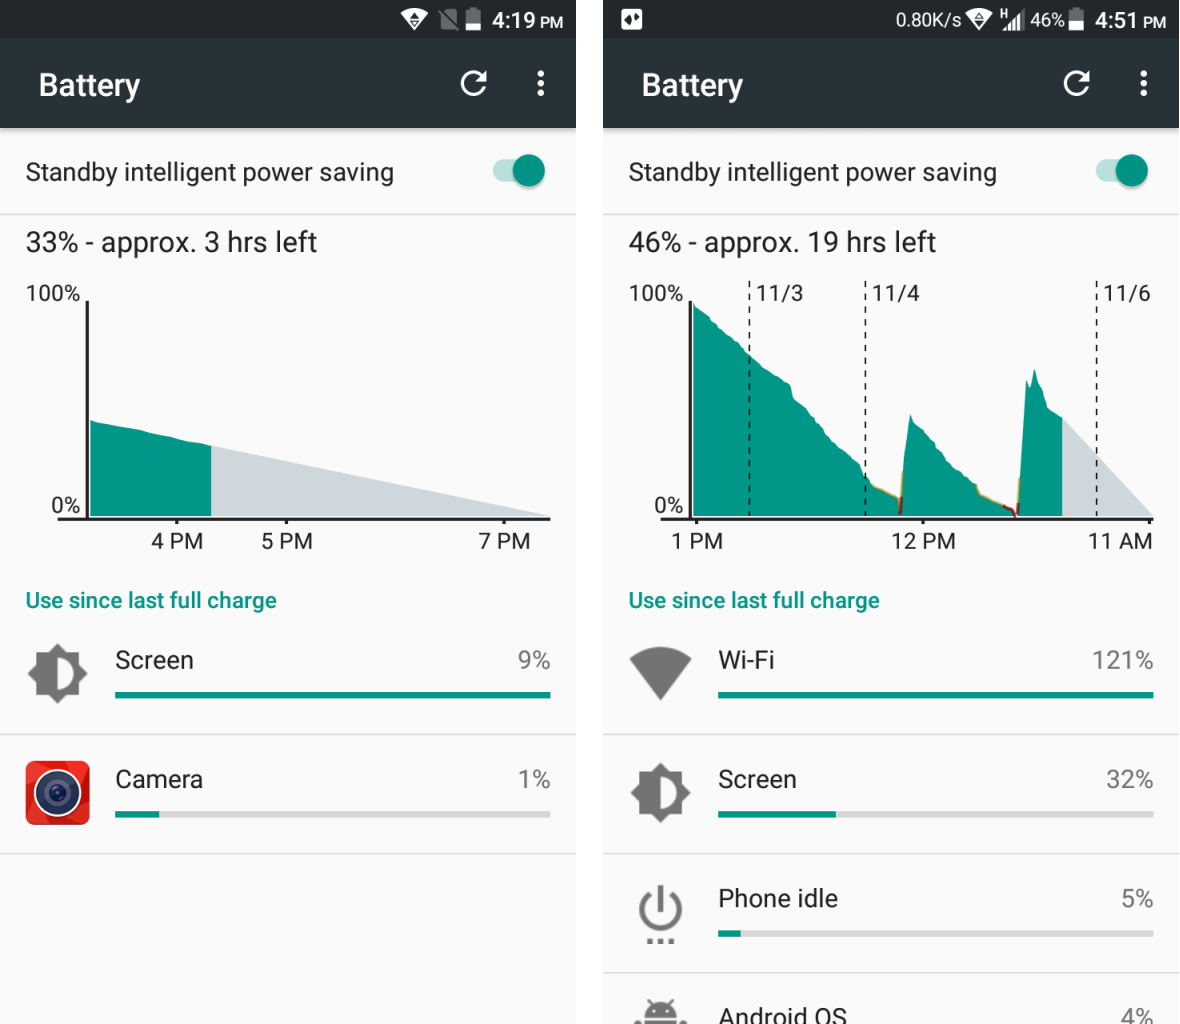 Battery Performance